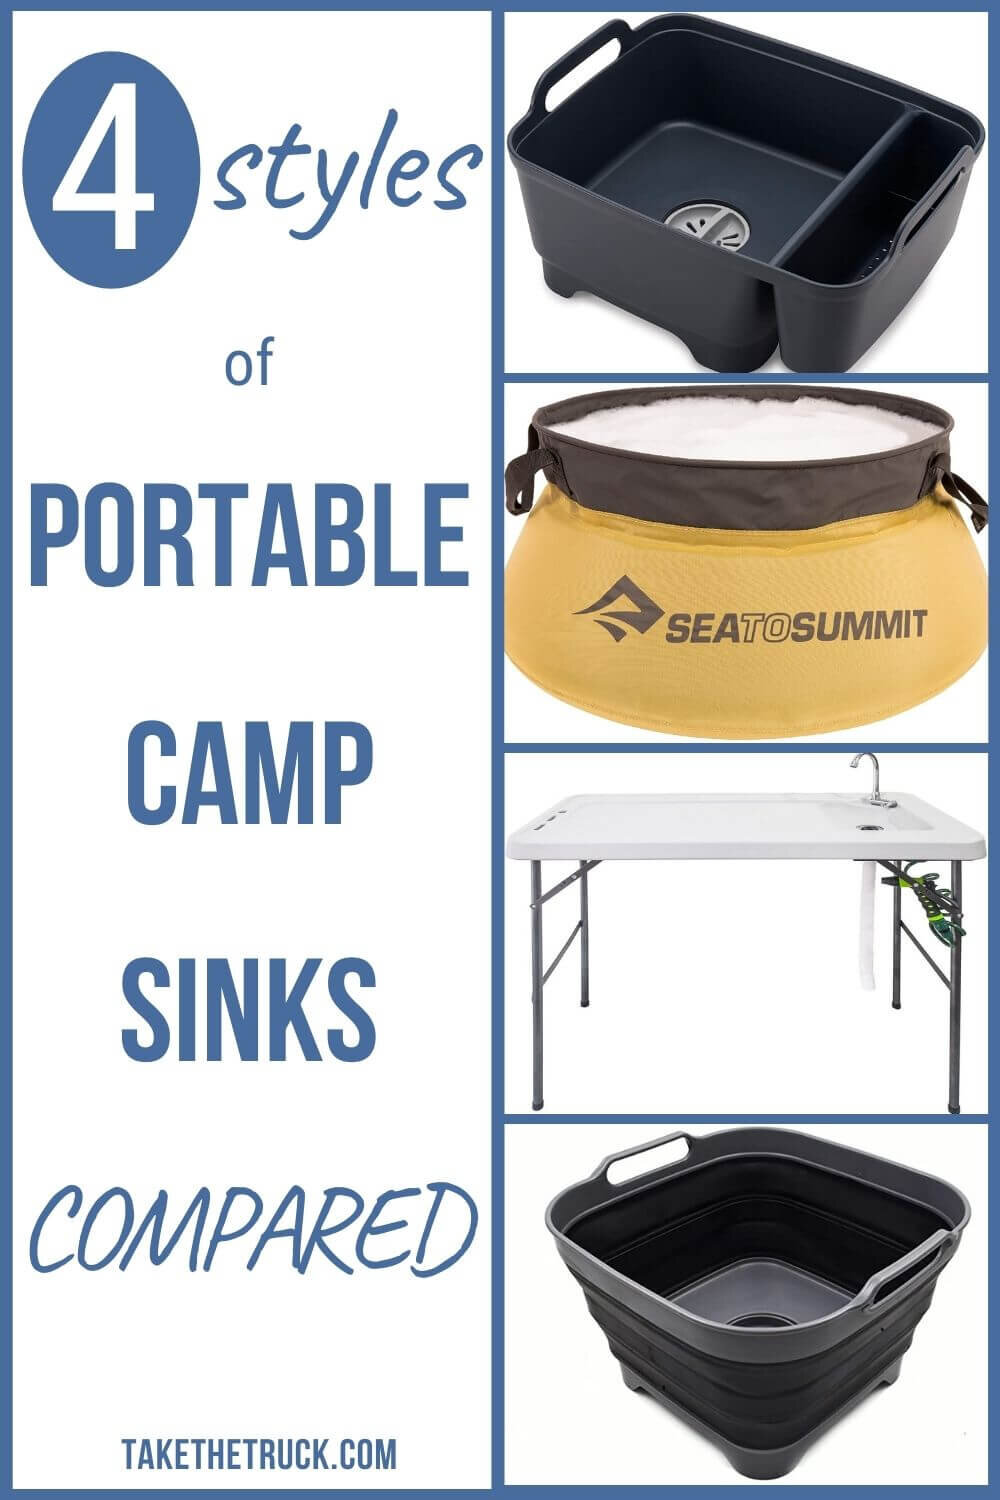 Looking for a good portable camping sink idea? This post will help, whether you need a backpacking sink, collapsible camping sink, truck bed camping sink, or car, suv, or minivan camping sink!